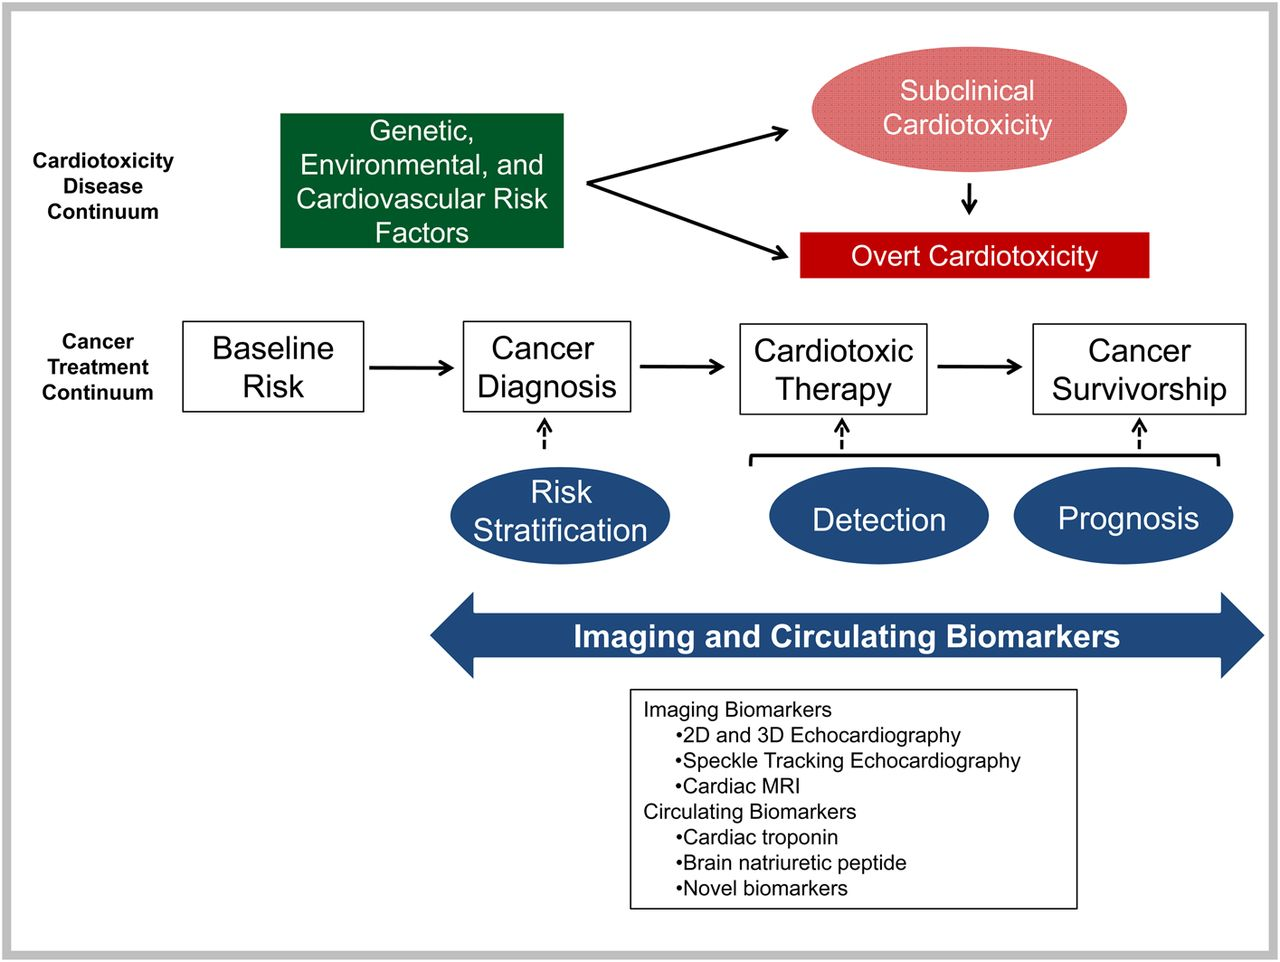 Roadmap For Biomarkers Of Cancer Therapy Cardiotoxicity